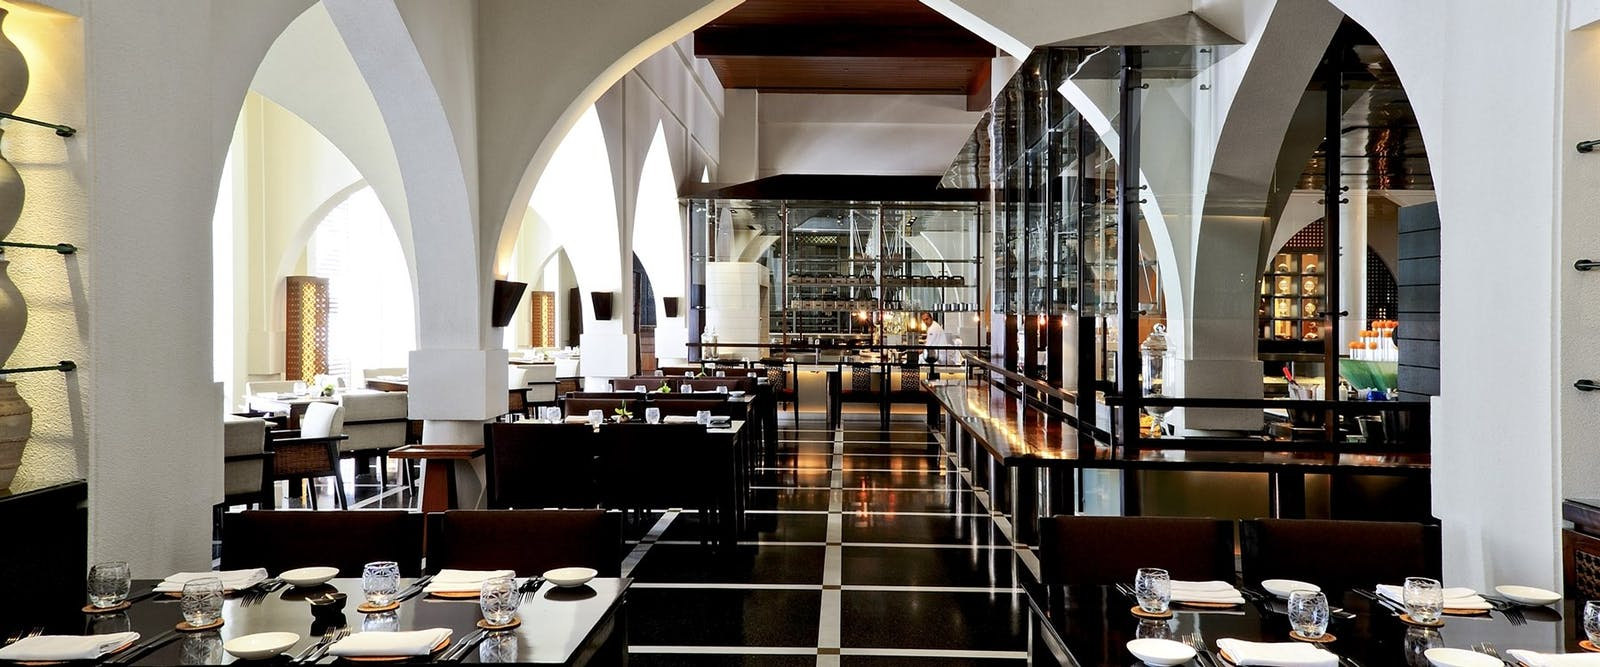 The restaurant main area at The Chedi Muscat, Oman